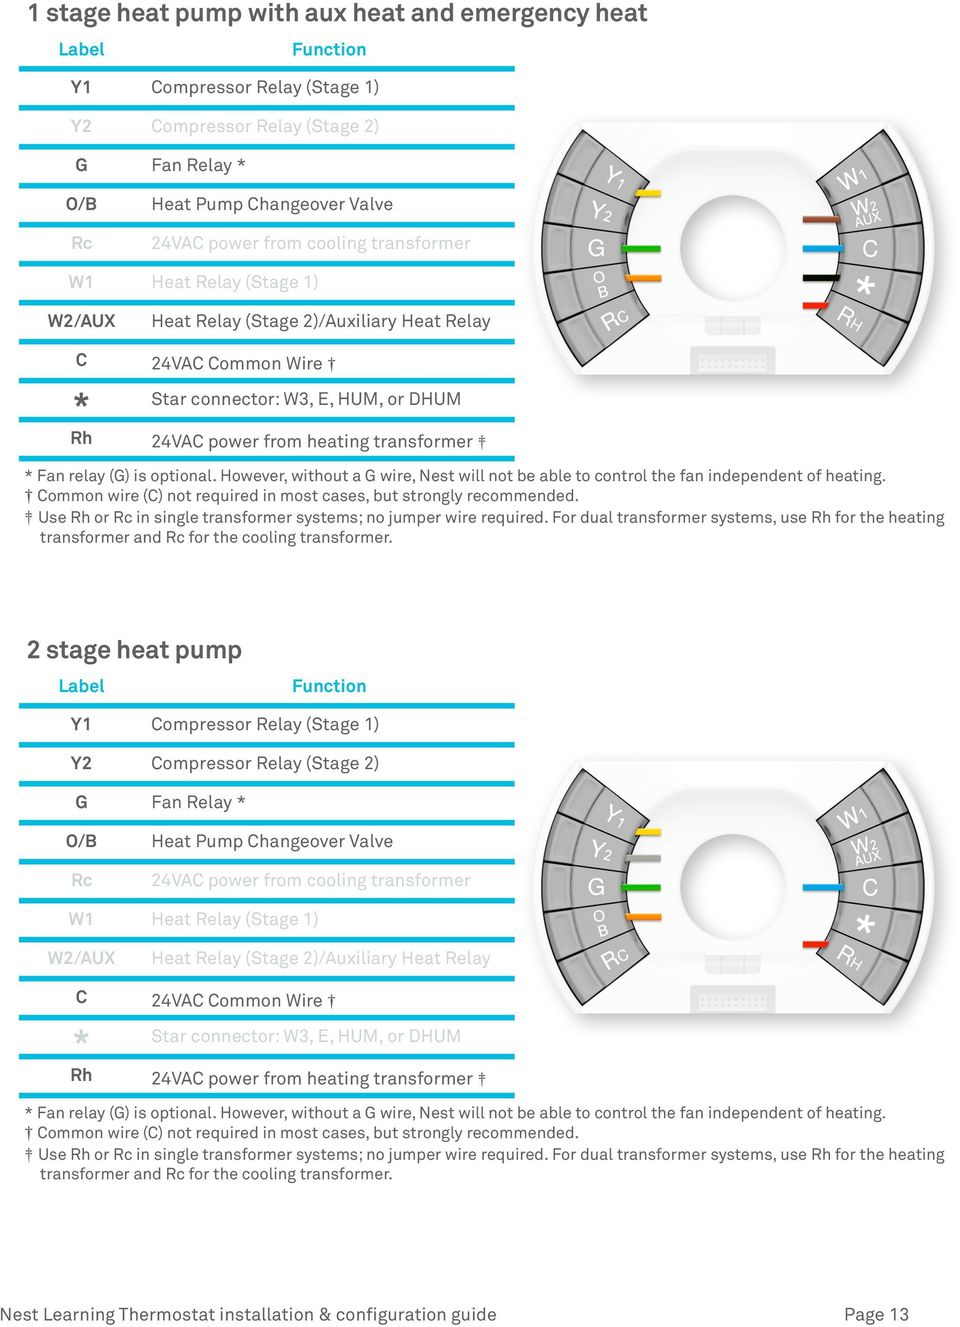 Nest Thermostat Wiring Diagram Heat Pump | Wiring Diagram - Nest Thermostat Wiring Diagram Heat Pump